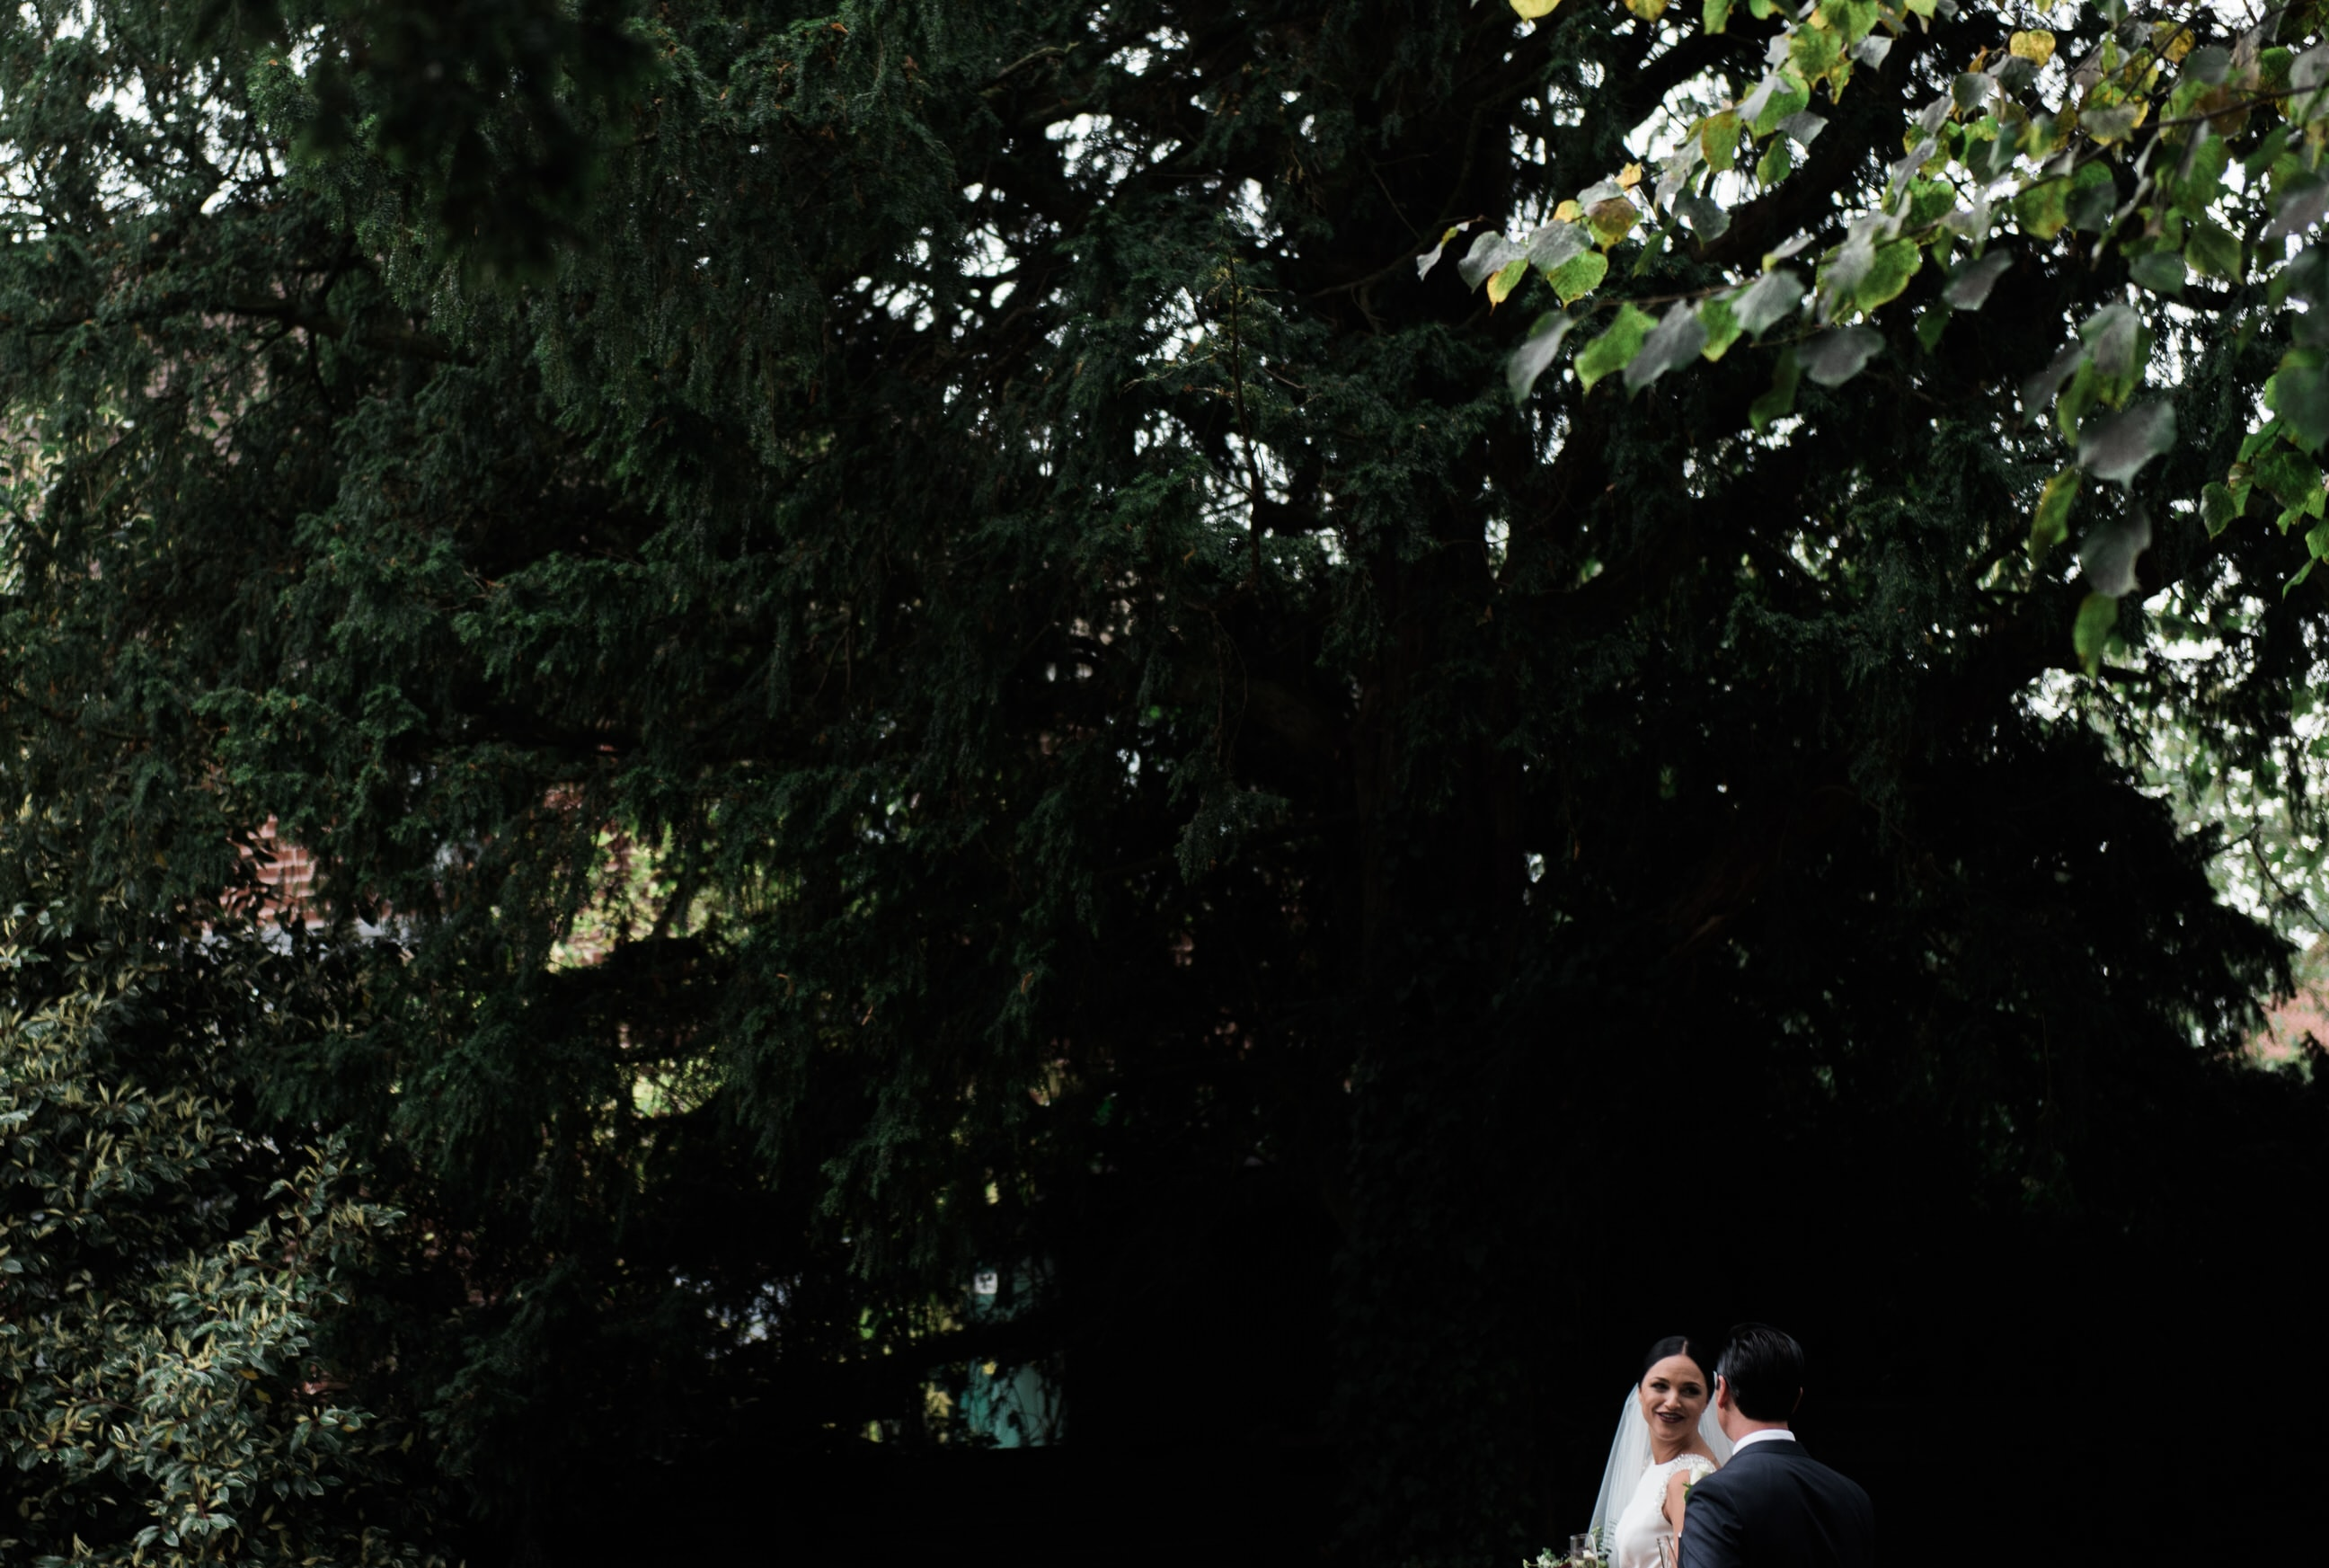 Bride and groom talking under trees